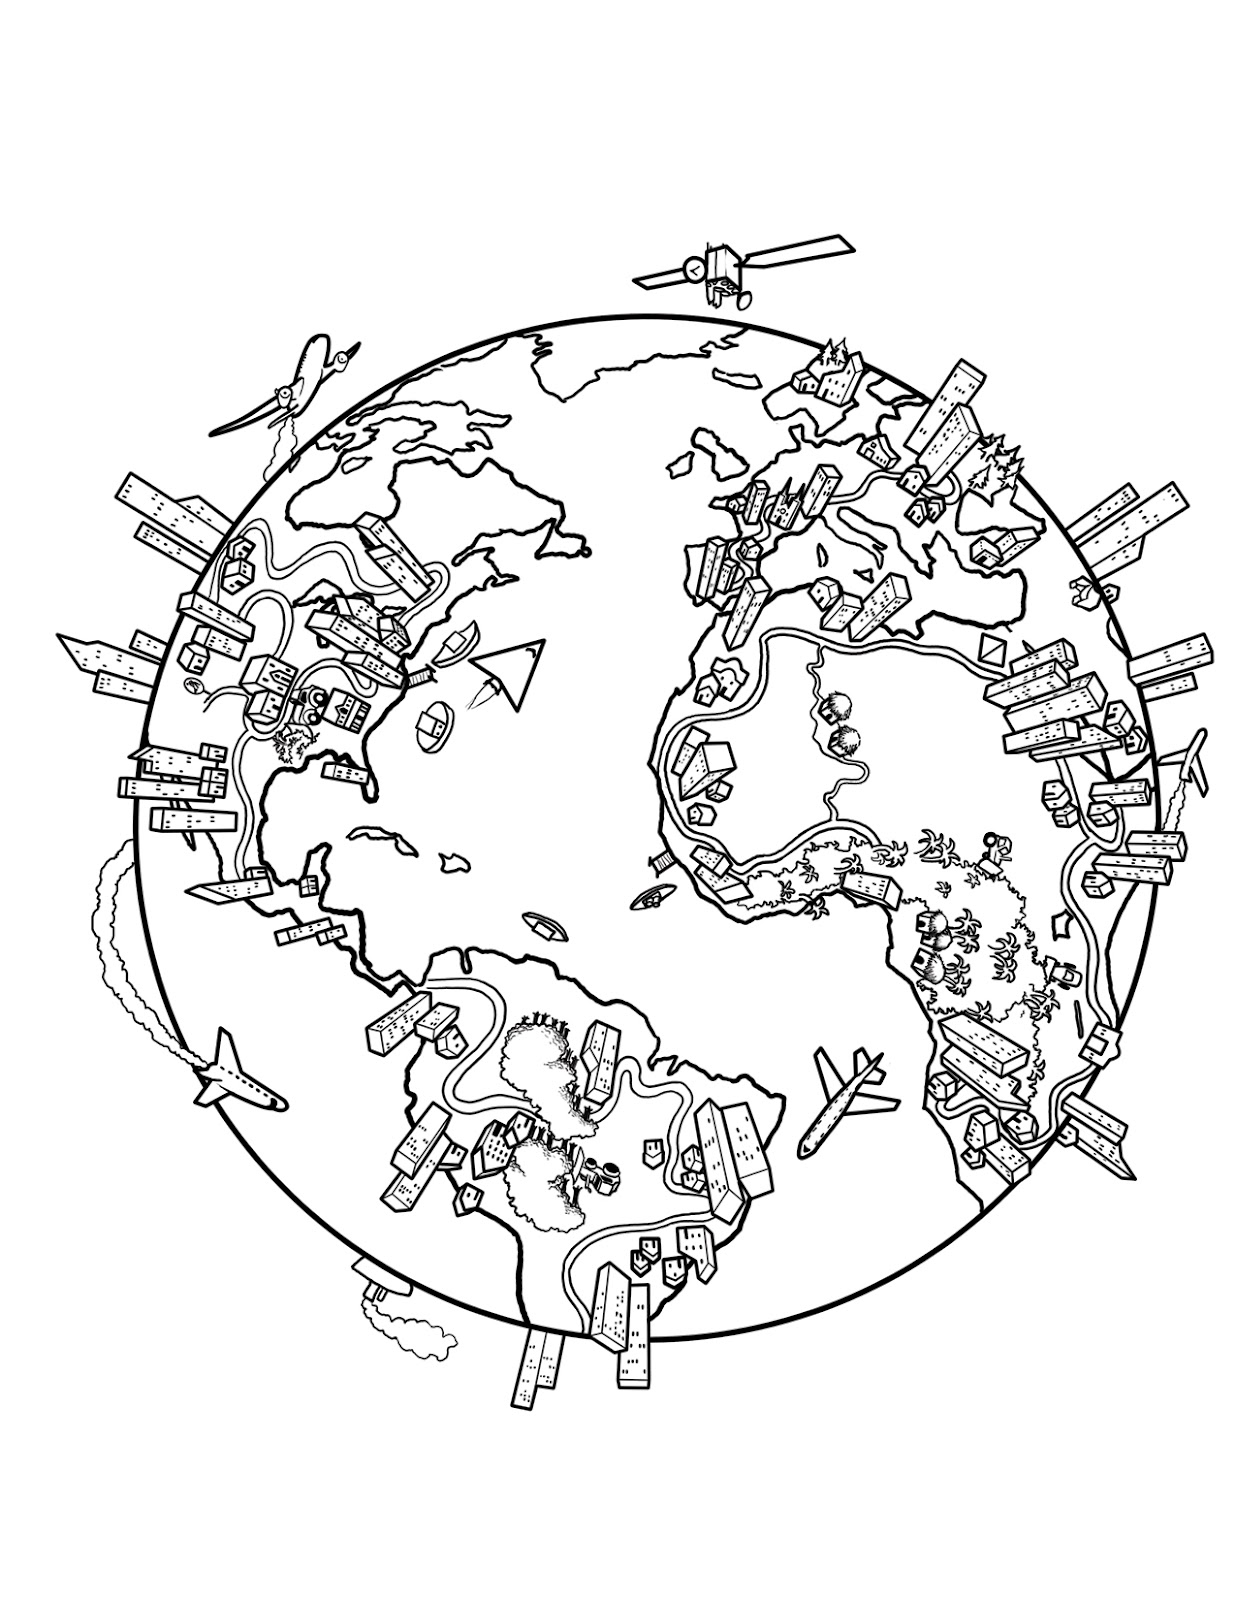 1236x1600 Downloads Online Coloring Page World Map For Kids Free Printable